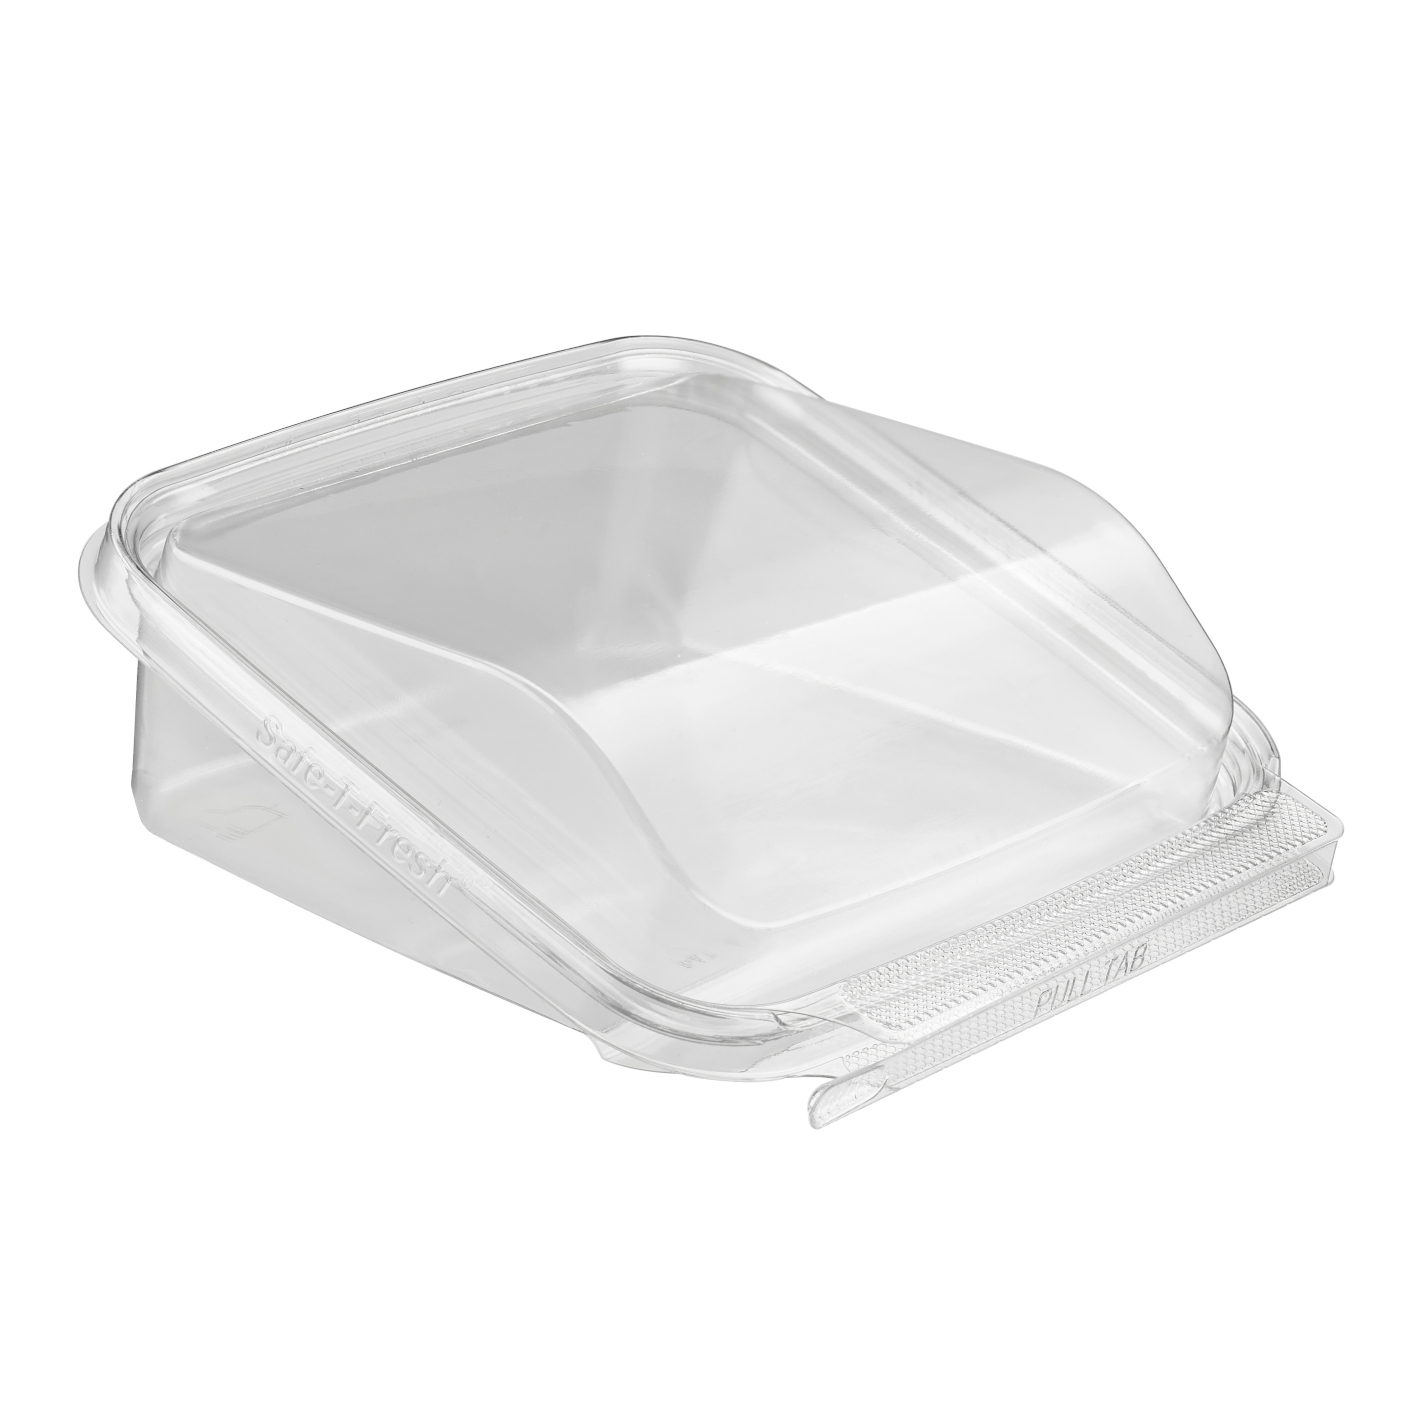 TSSWR Clear Tamper-Proof Wrap Container - 252